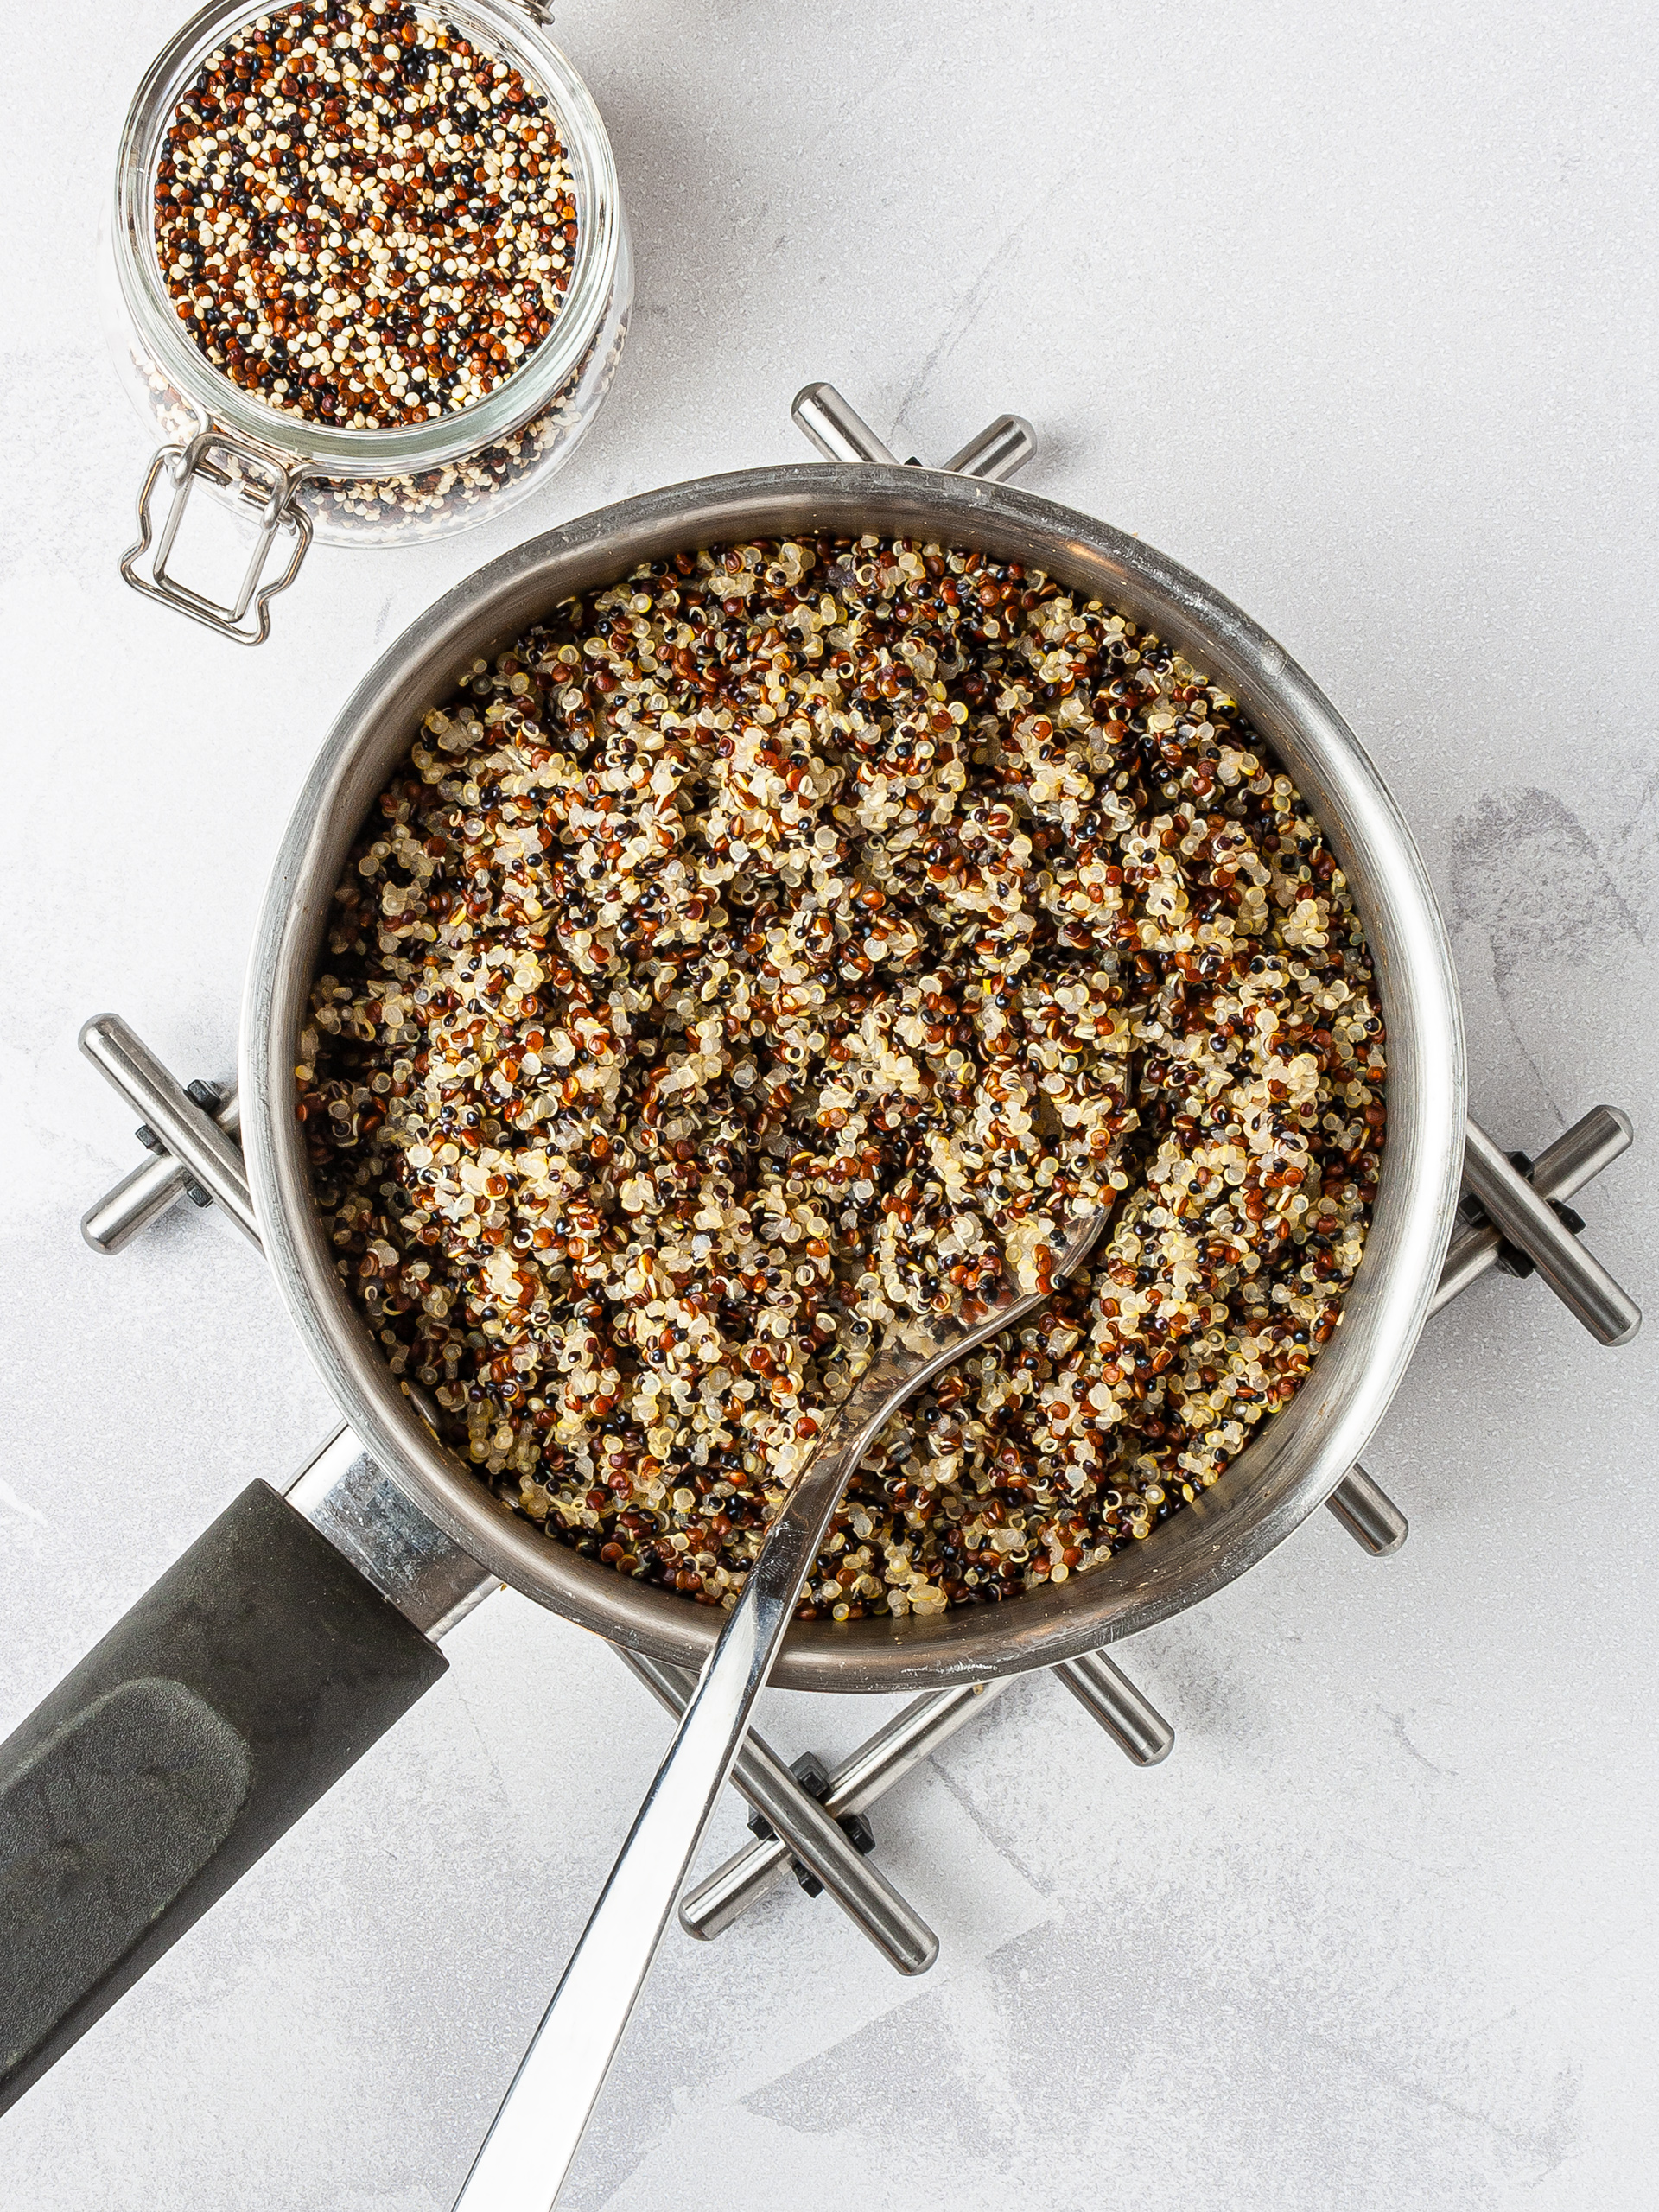 Cooked quinoa in a pan.